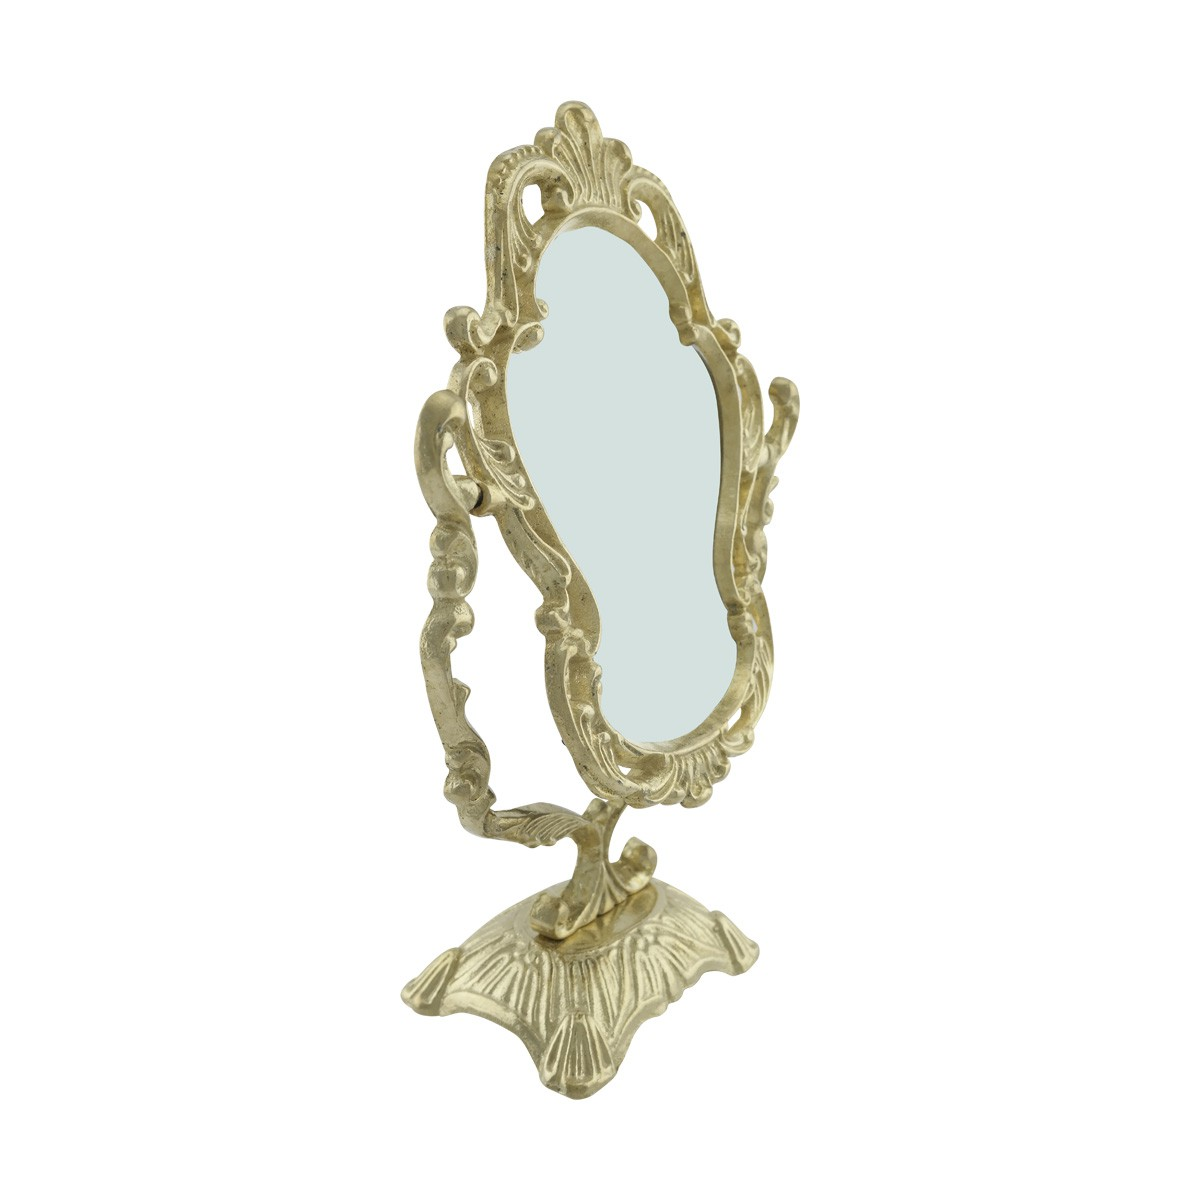 Antique Cast Brass Vanity Mirror Table Make Up Make Up Mirror Antique Mirror Free Standing Mirror